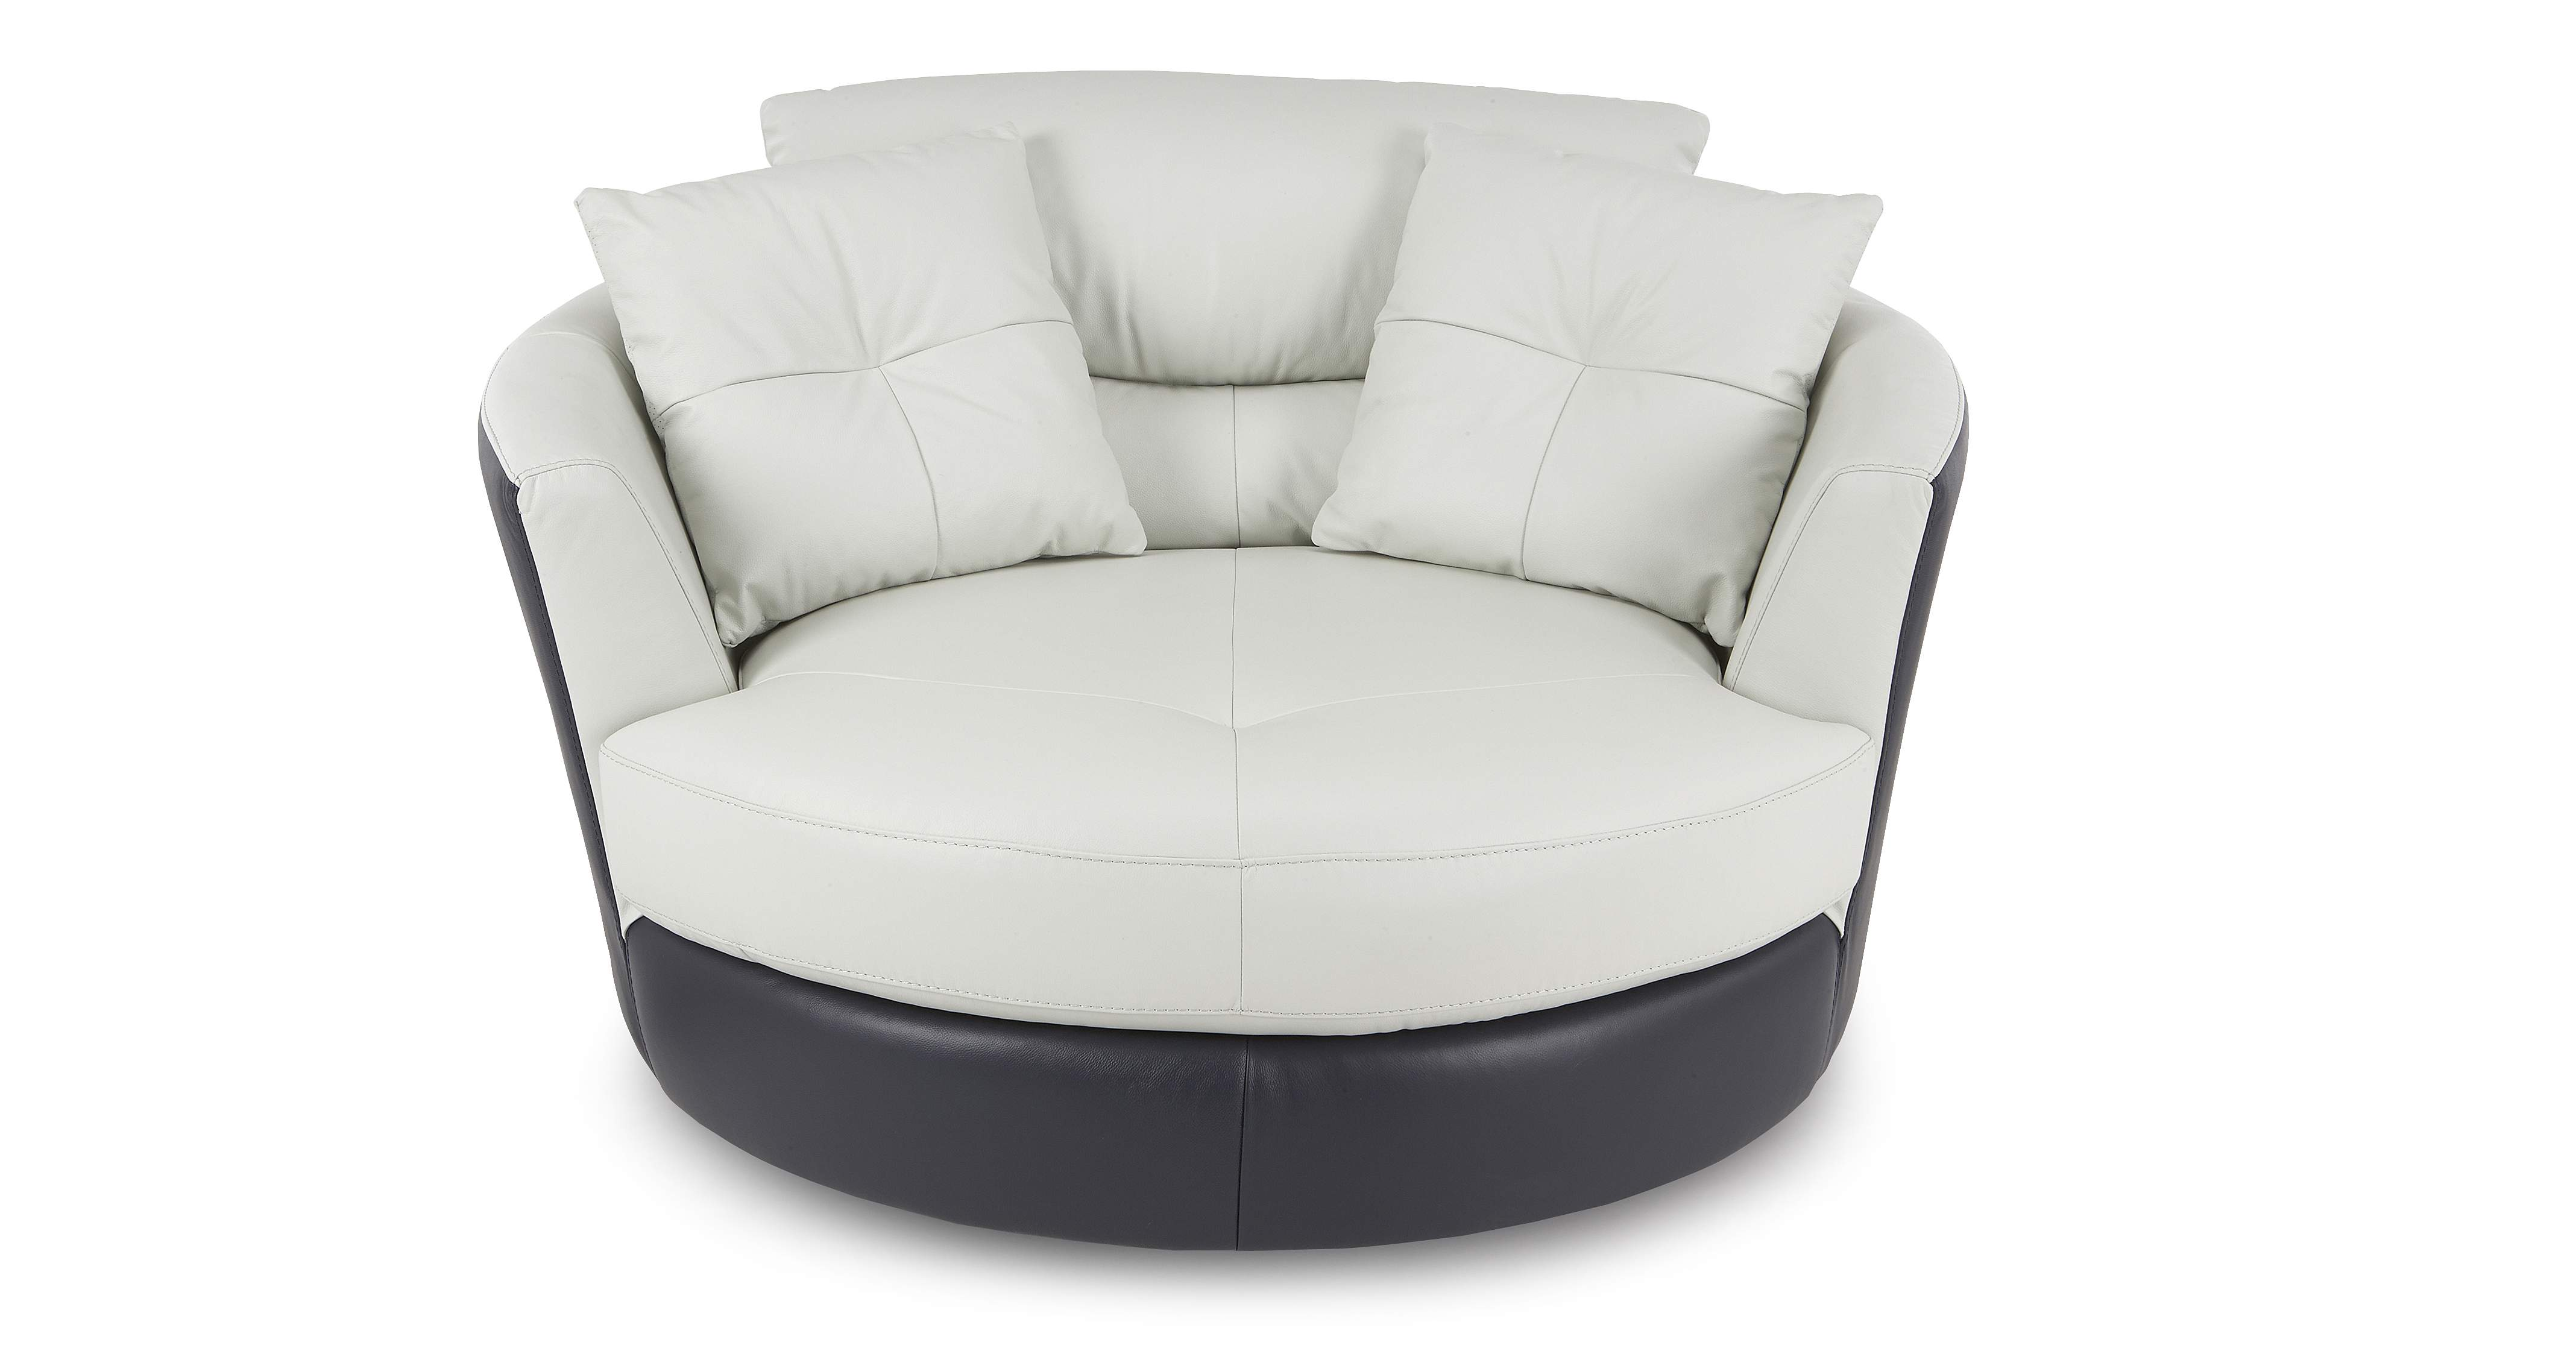 DFS Azure Set Includes White Leather Swivel Chair and Half